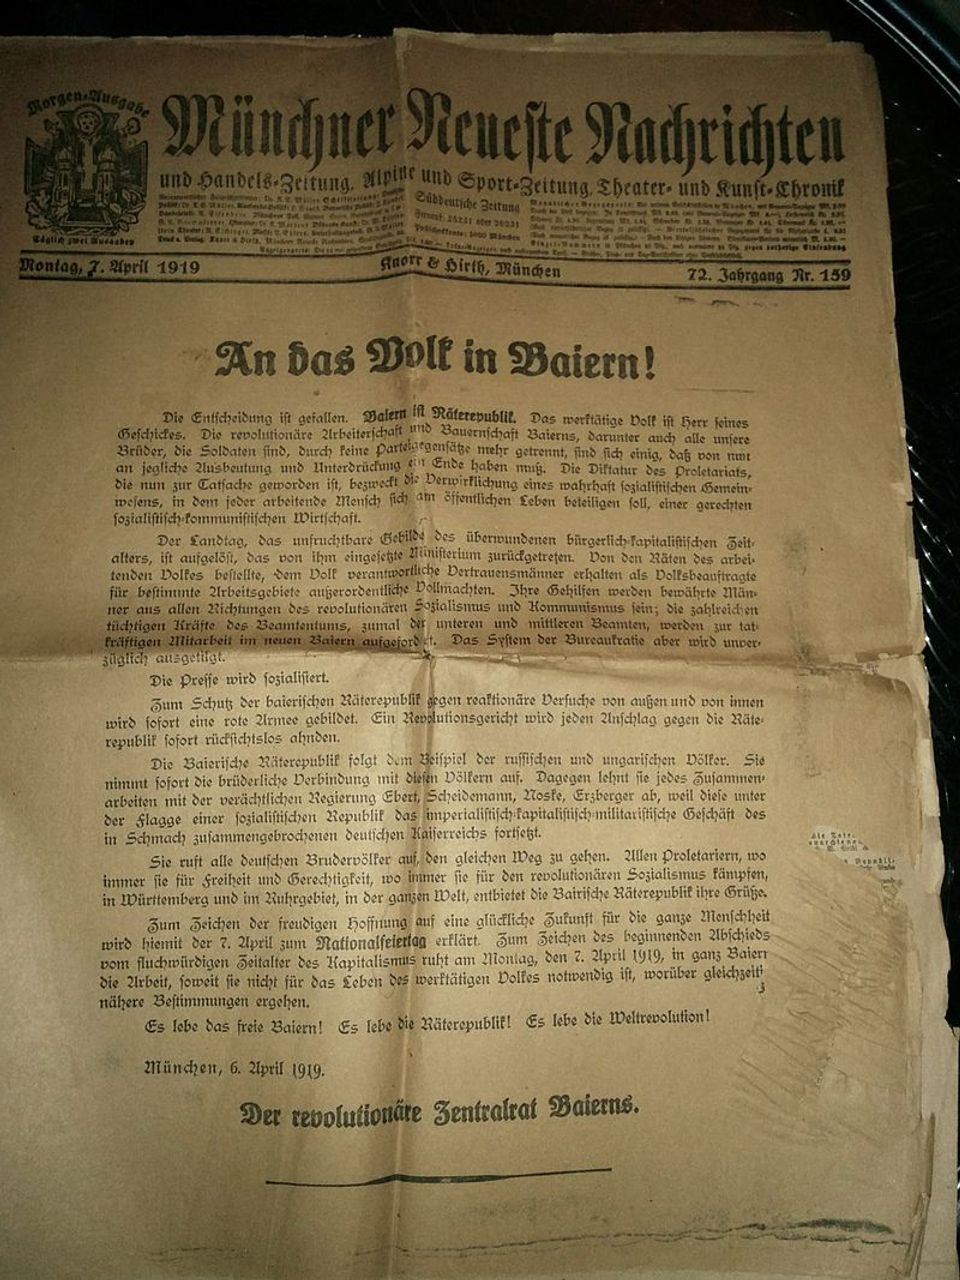 The declaration of the Bavarian Soviet Republic in a Munich newspaper on 7 April 1919